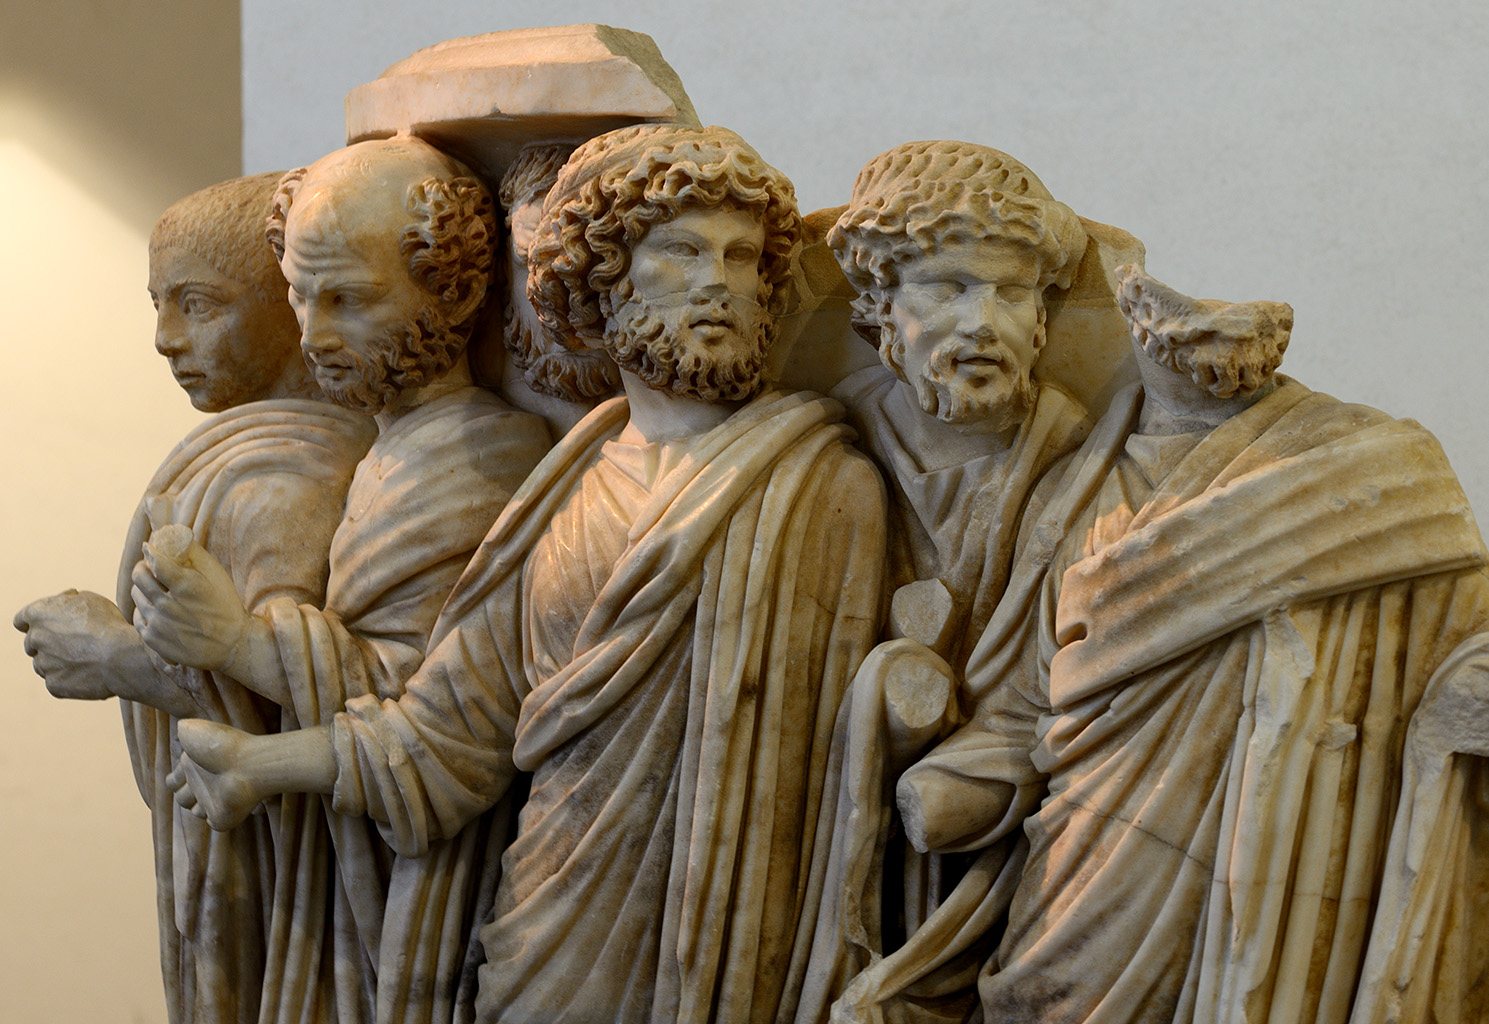 A lenos sarcophagus with processus consularis (a procession for the appointment of a consul). Close-up. Greek marble (Parian?). Rome, c. 270 CE. Inv. No. 126372. Rome, Roman National Museum, Palazzo Massimo alle Terme